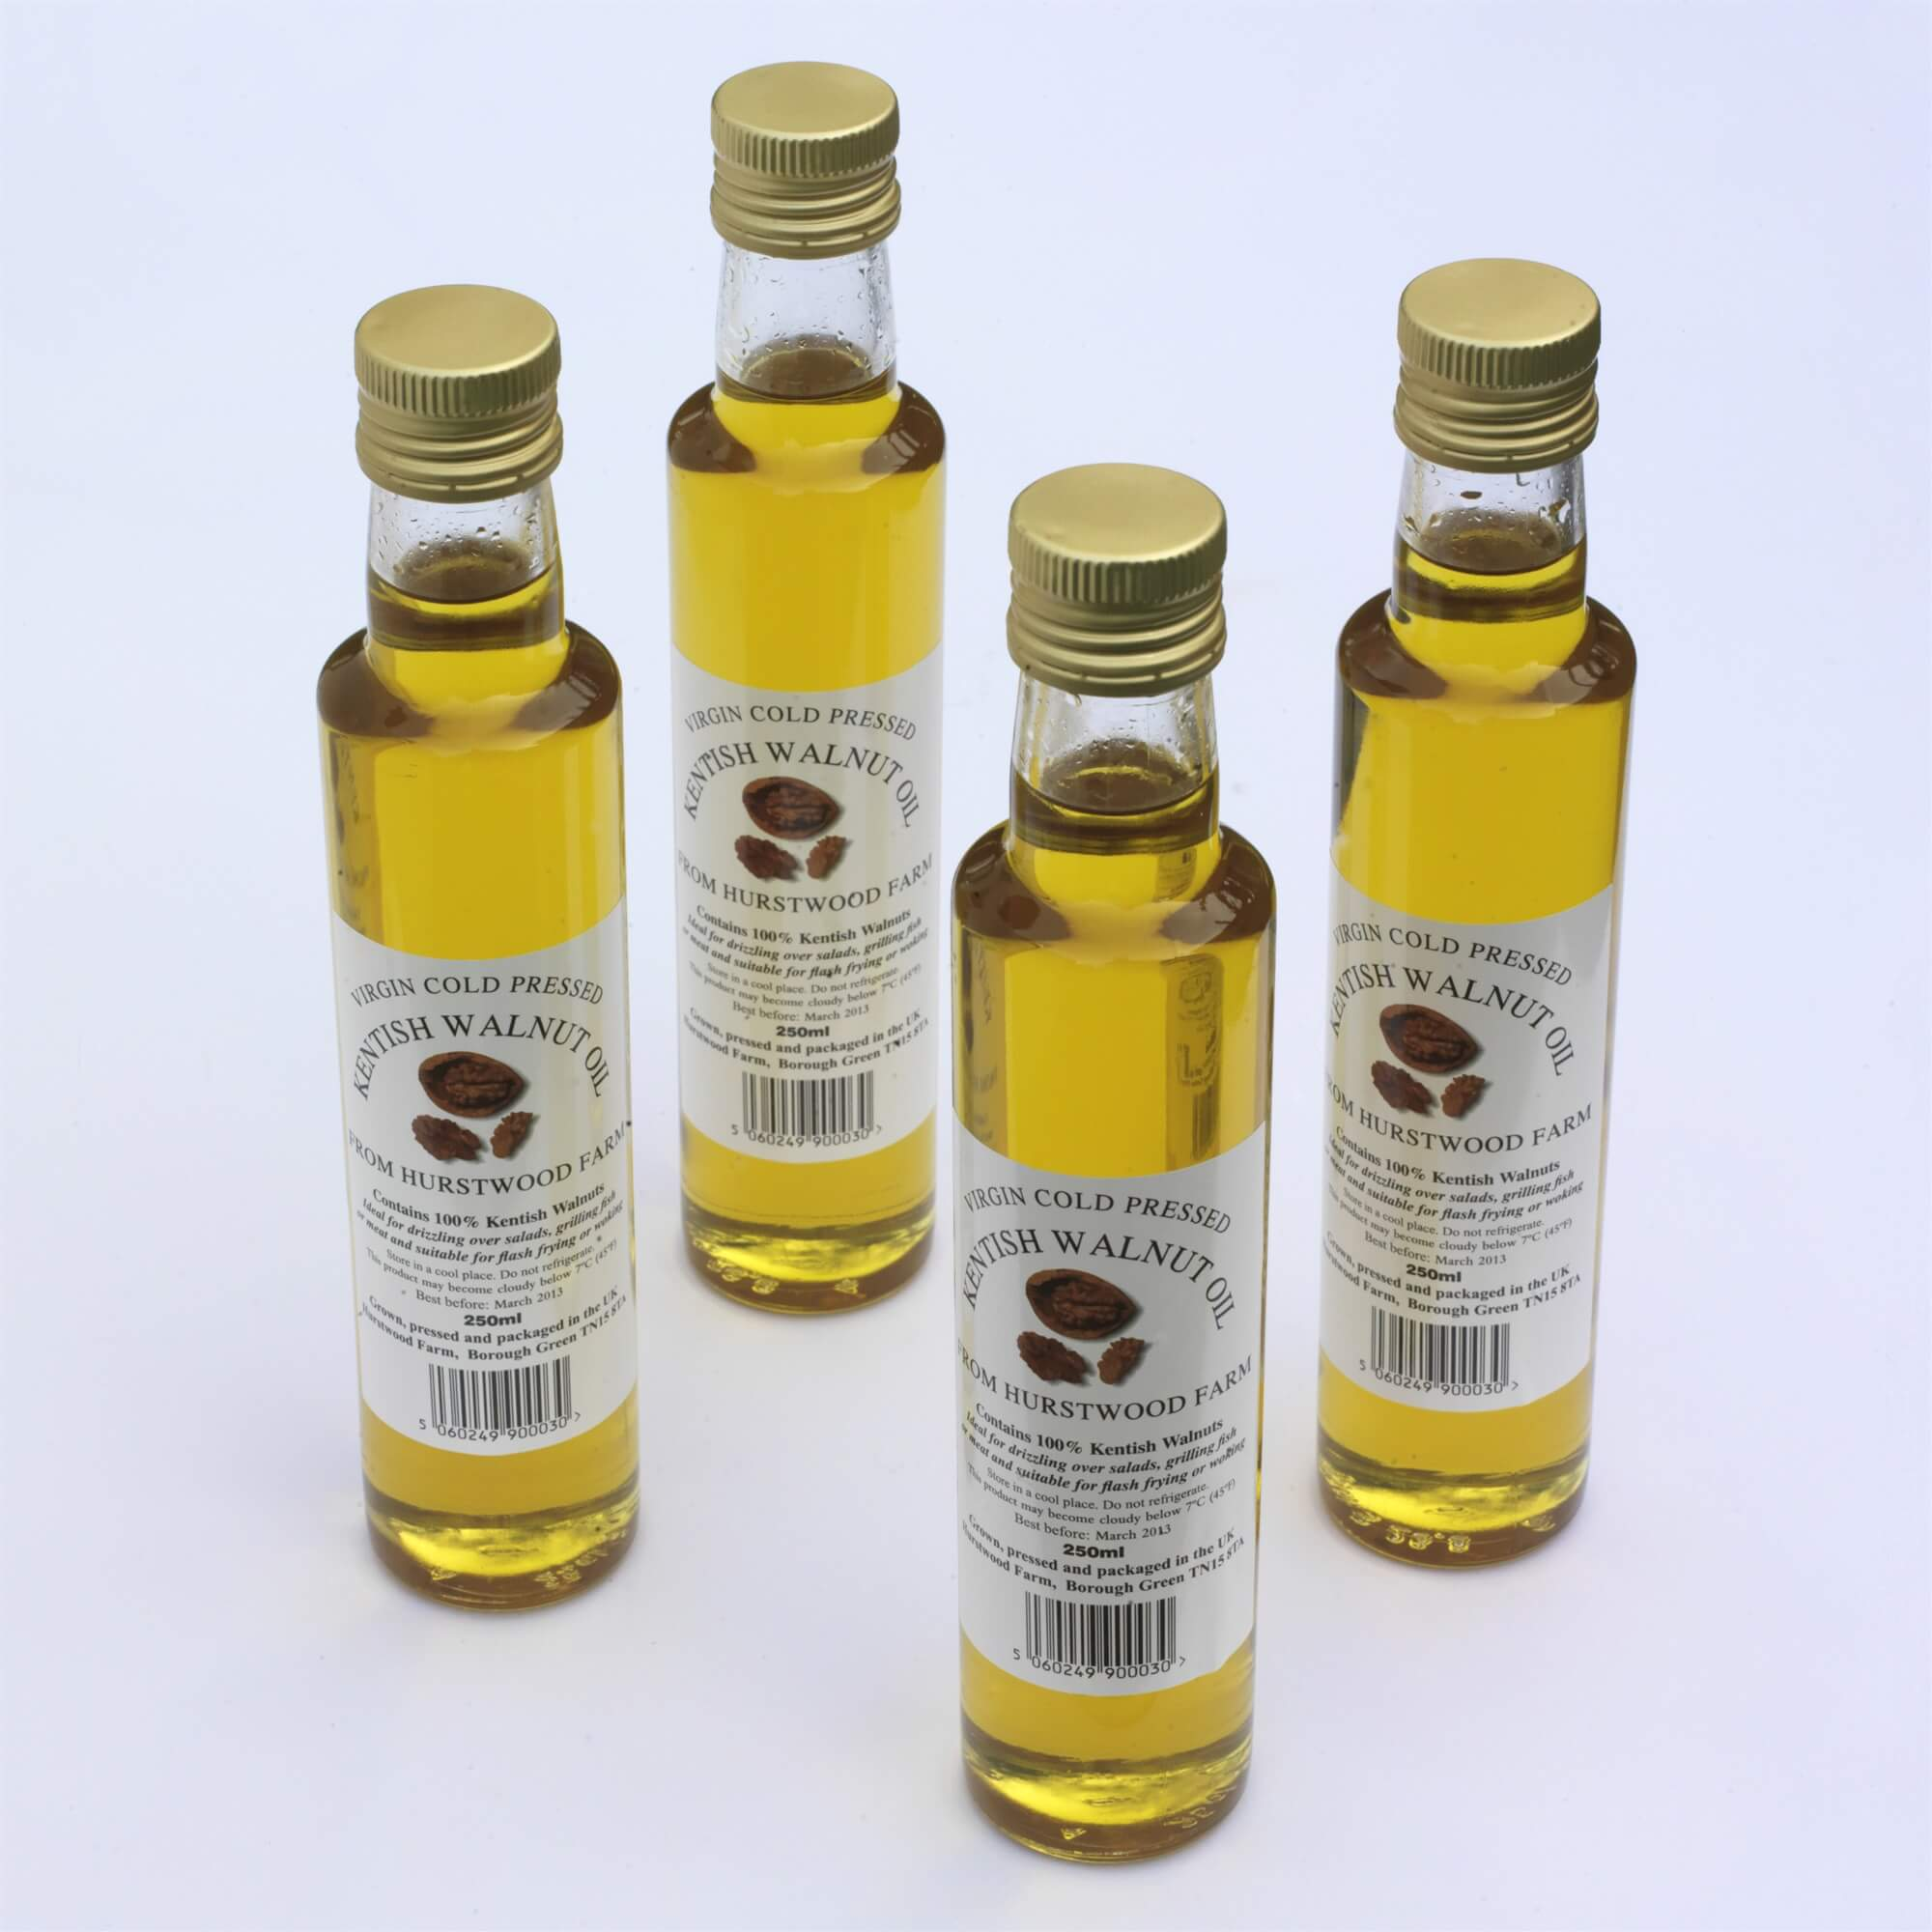 Virgin Cold Pressed Kentish Walnut Oil - It is an ideal alternative to the Kentish Cobnut oil and is good for drizzling over salads, grilling fish or meat and suitable for flash frying or woking.